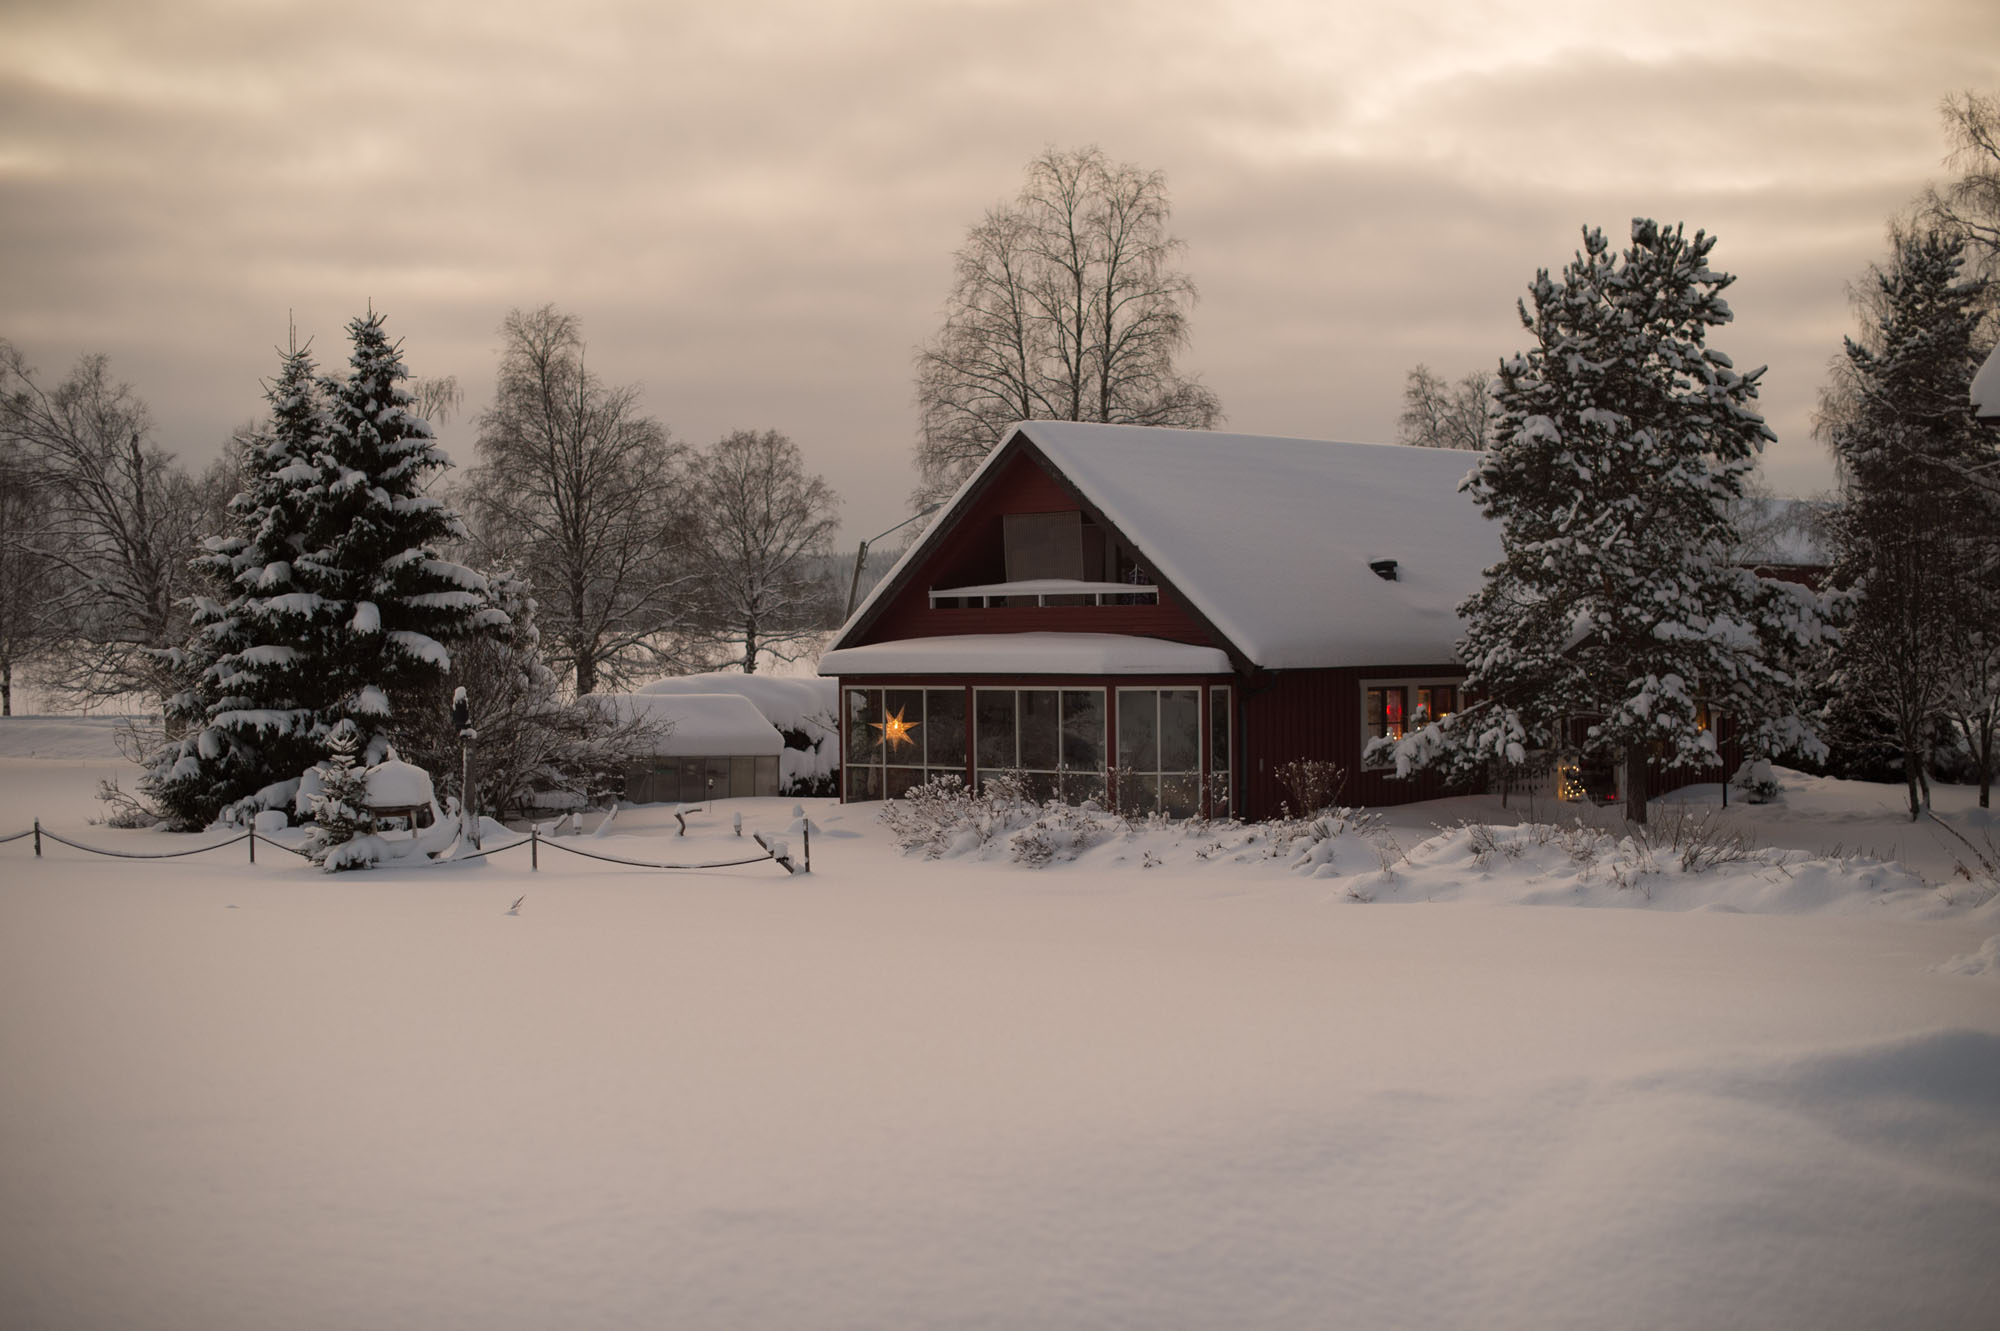 The farm during winter.